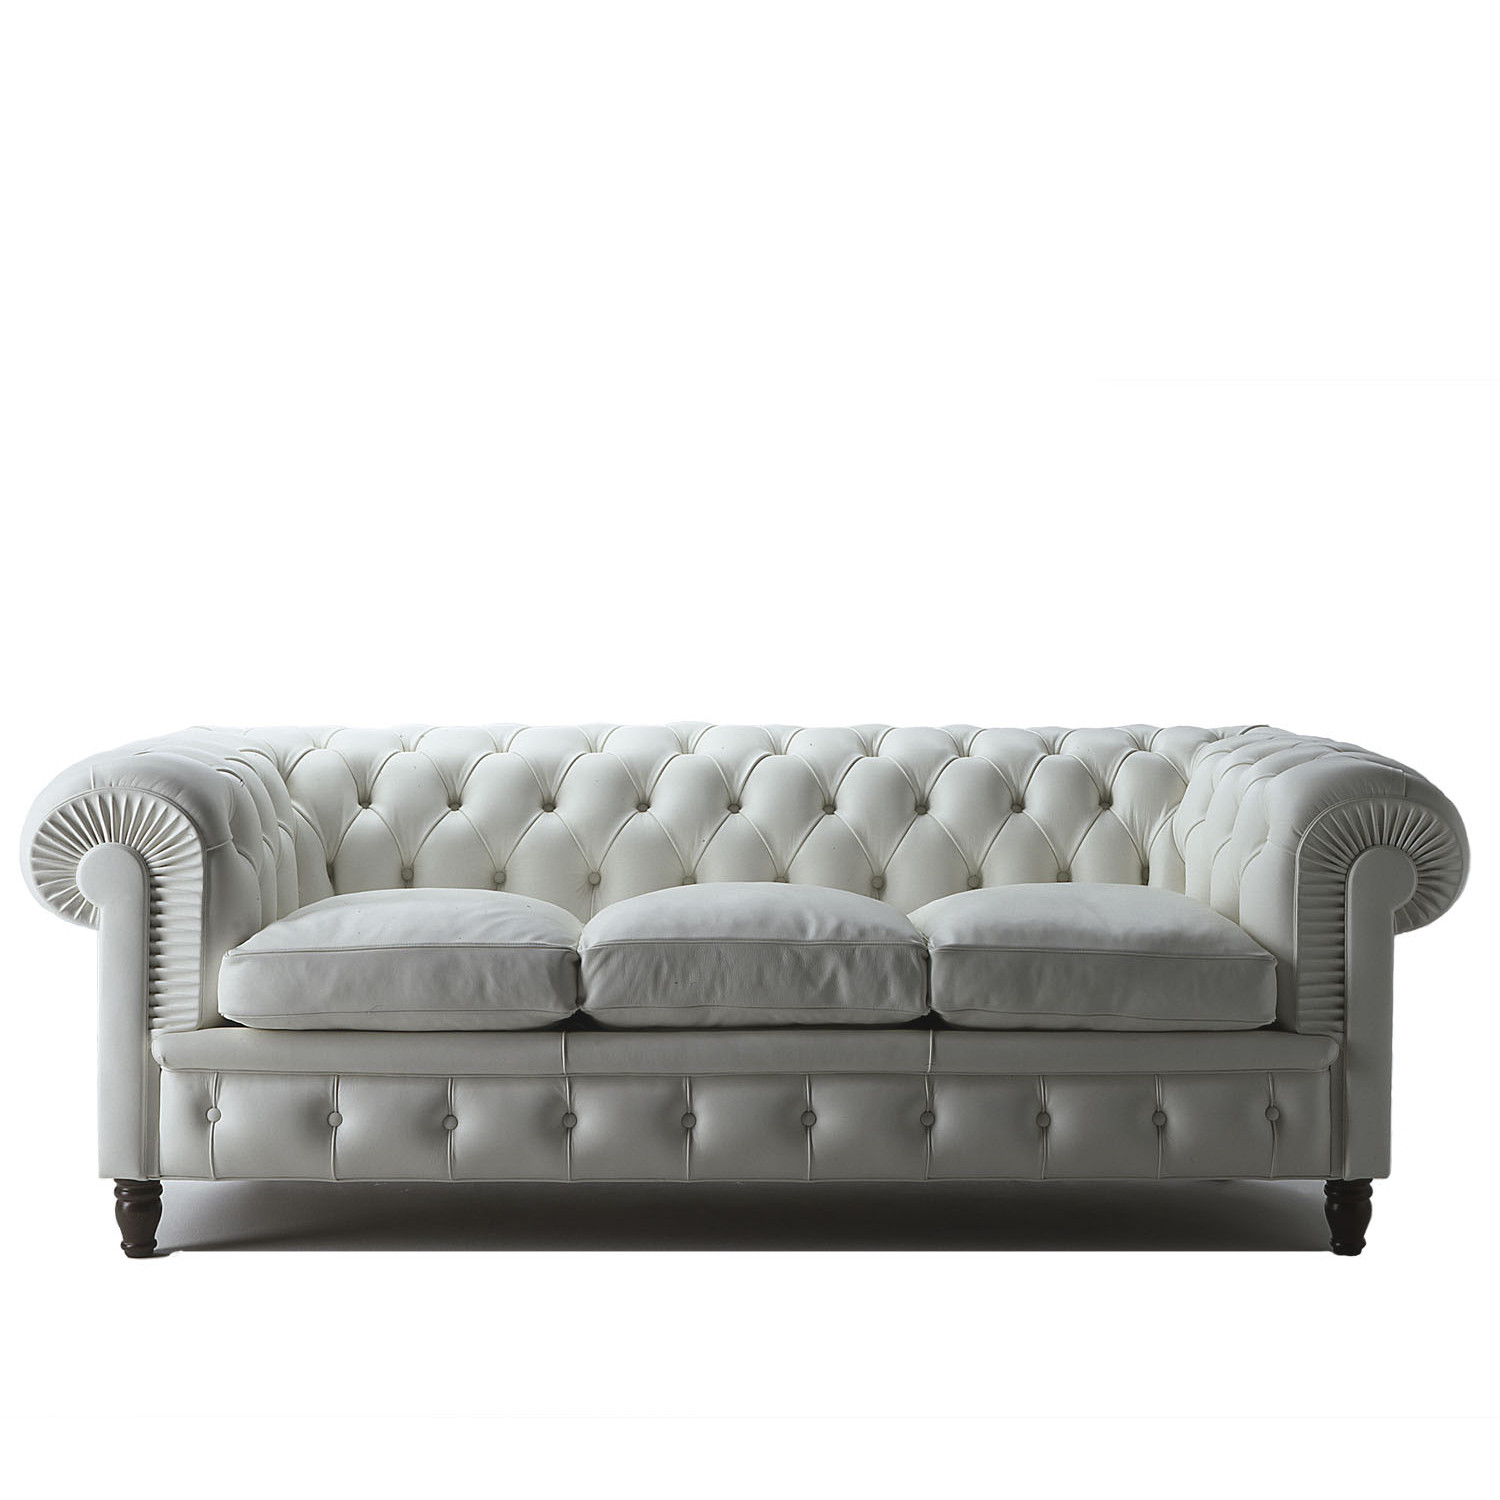 Chester Sofas Front View